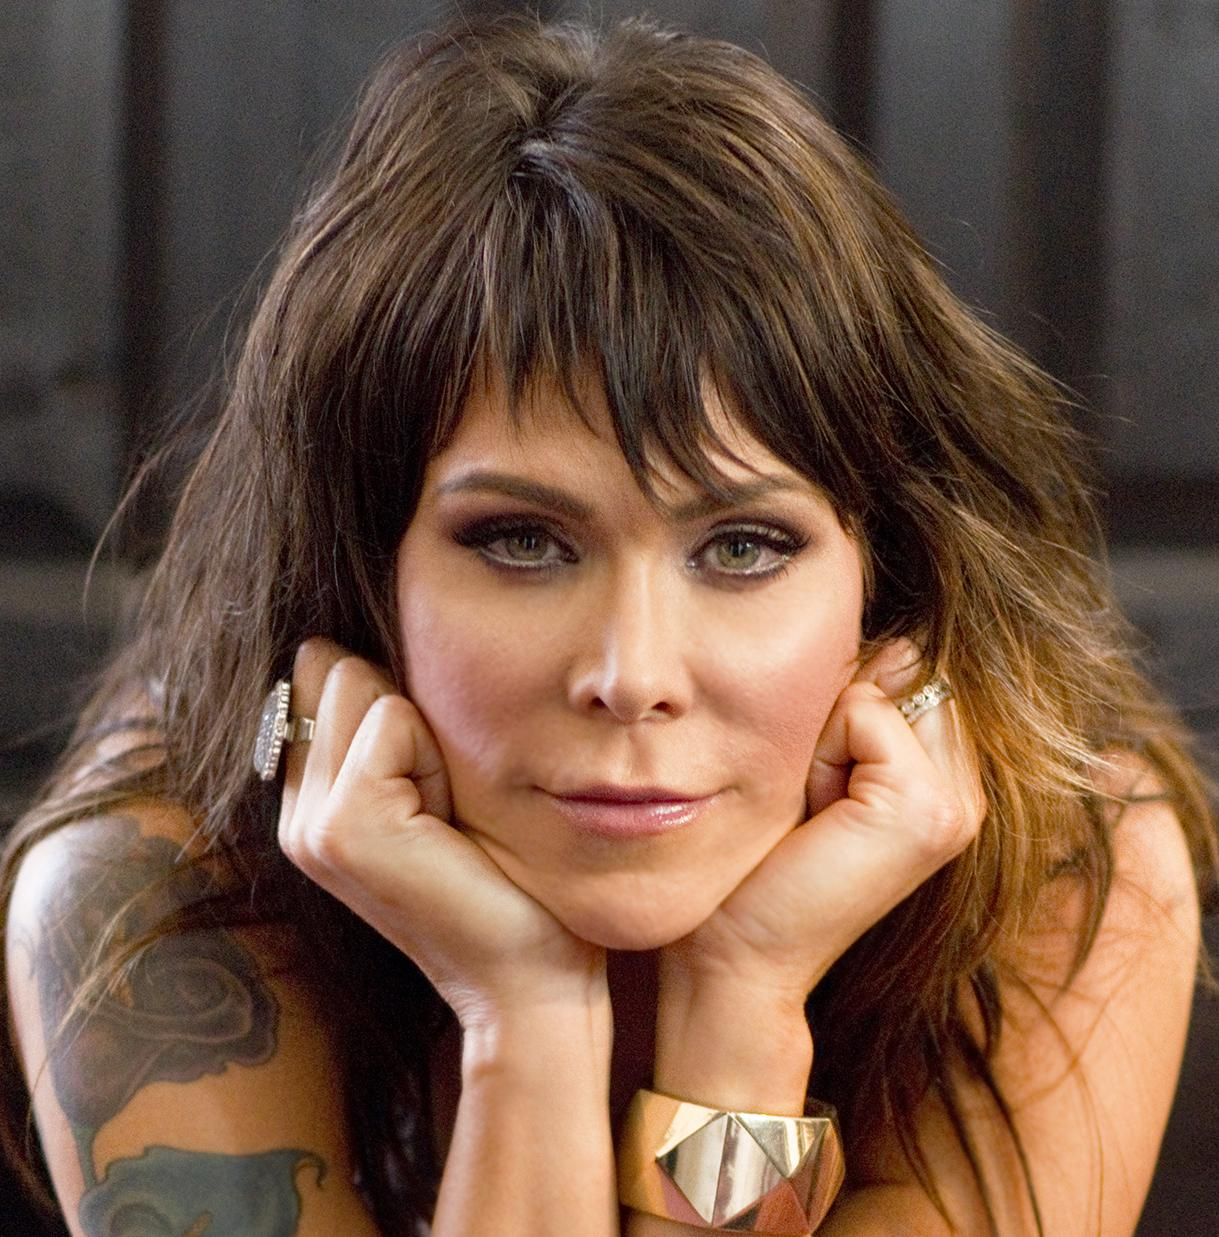 Beth Hart 054 by Greg Watermann cropped